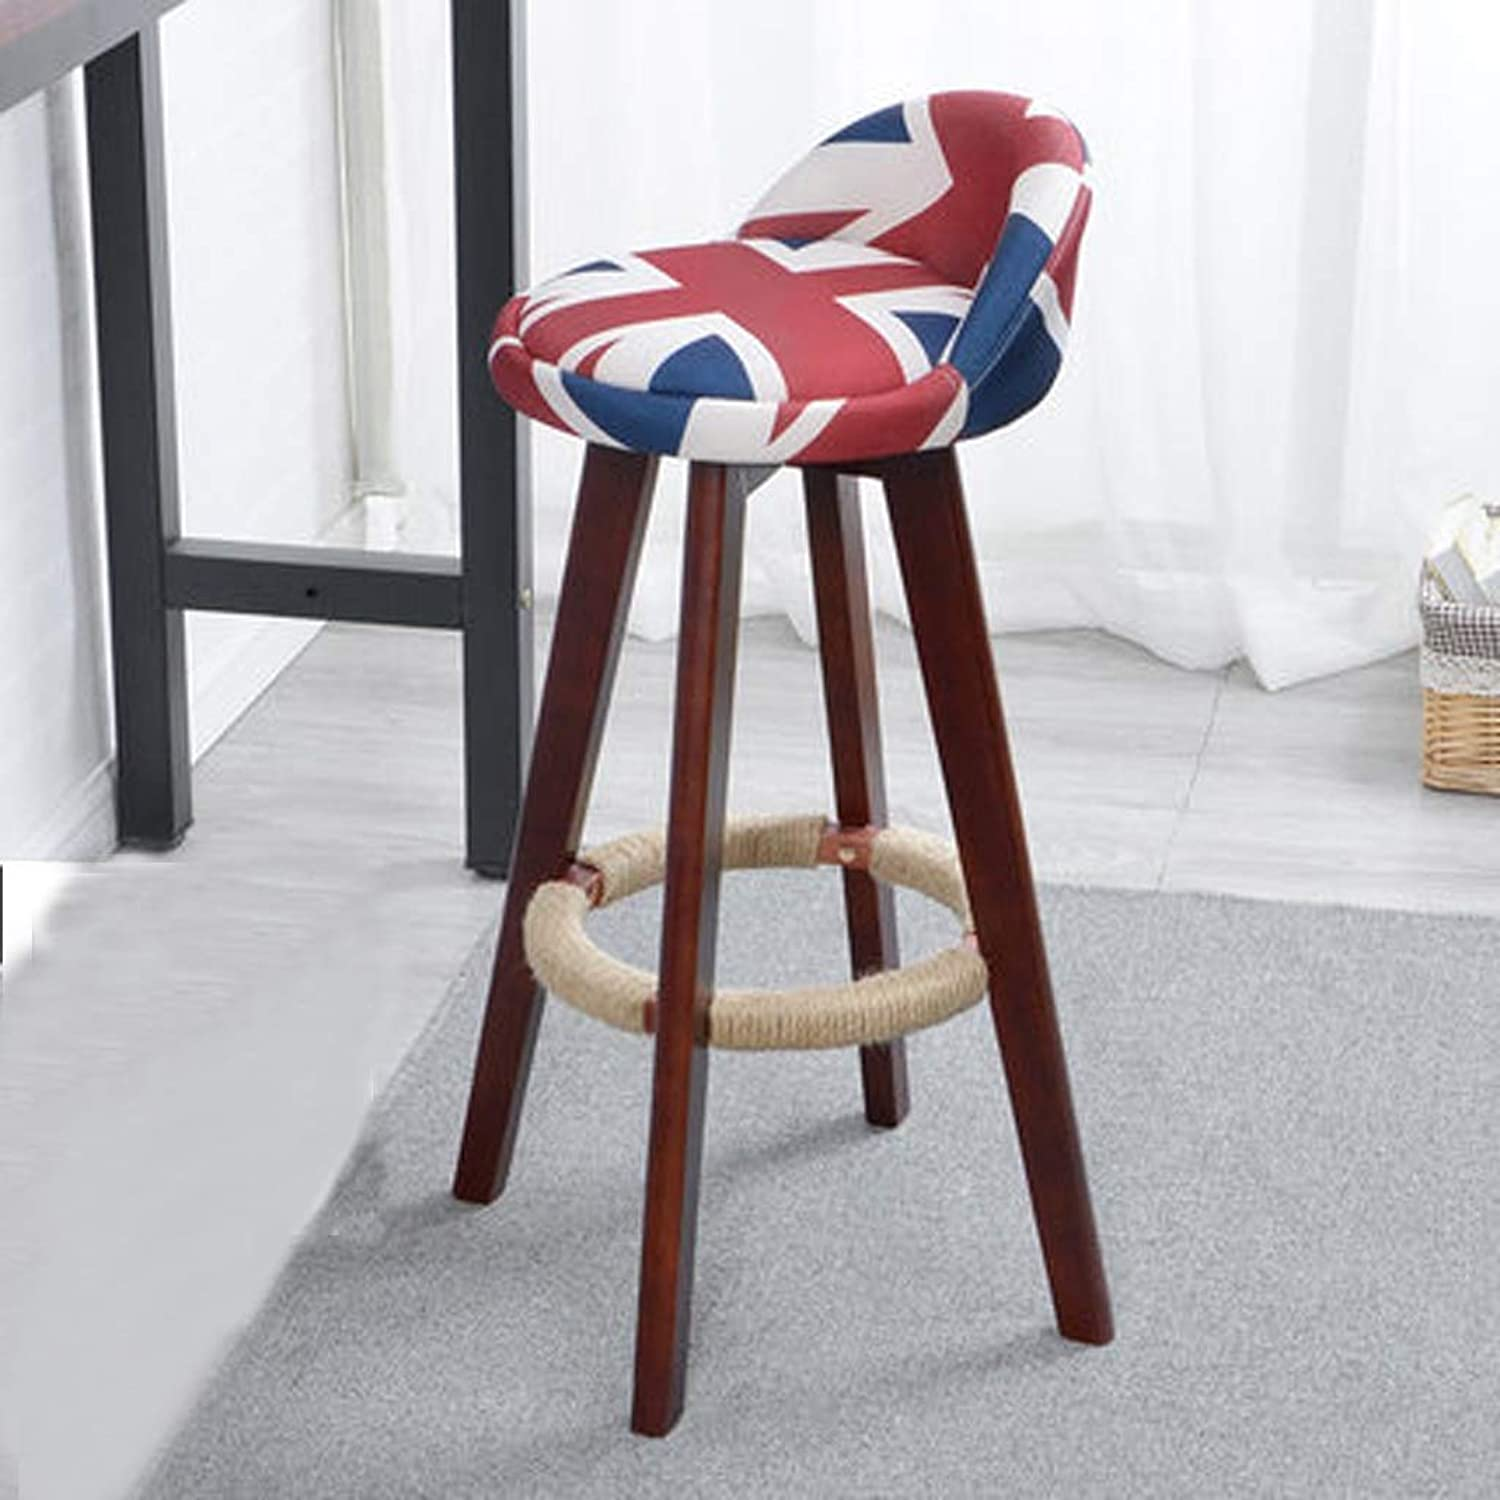 YJXJJD Solid Wood Bar Stool High Chair European Bar Chair Front Desk Bar Stool Simple High Stool (color   Multi-colord)